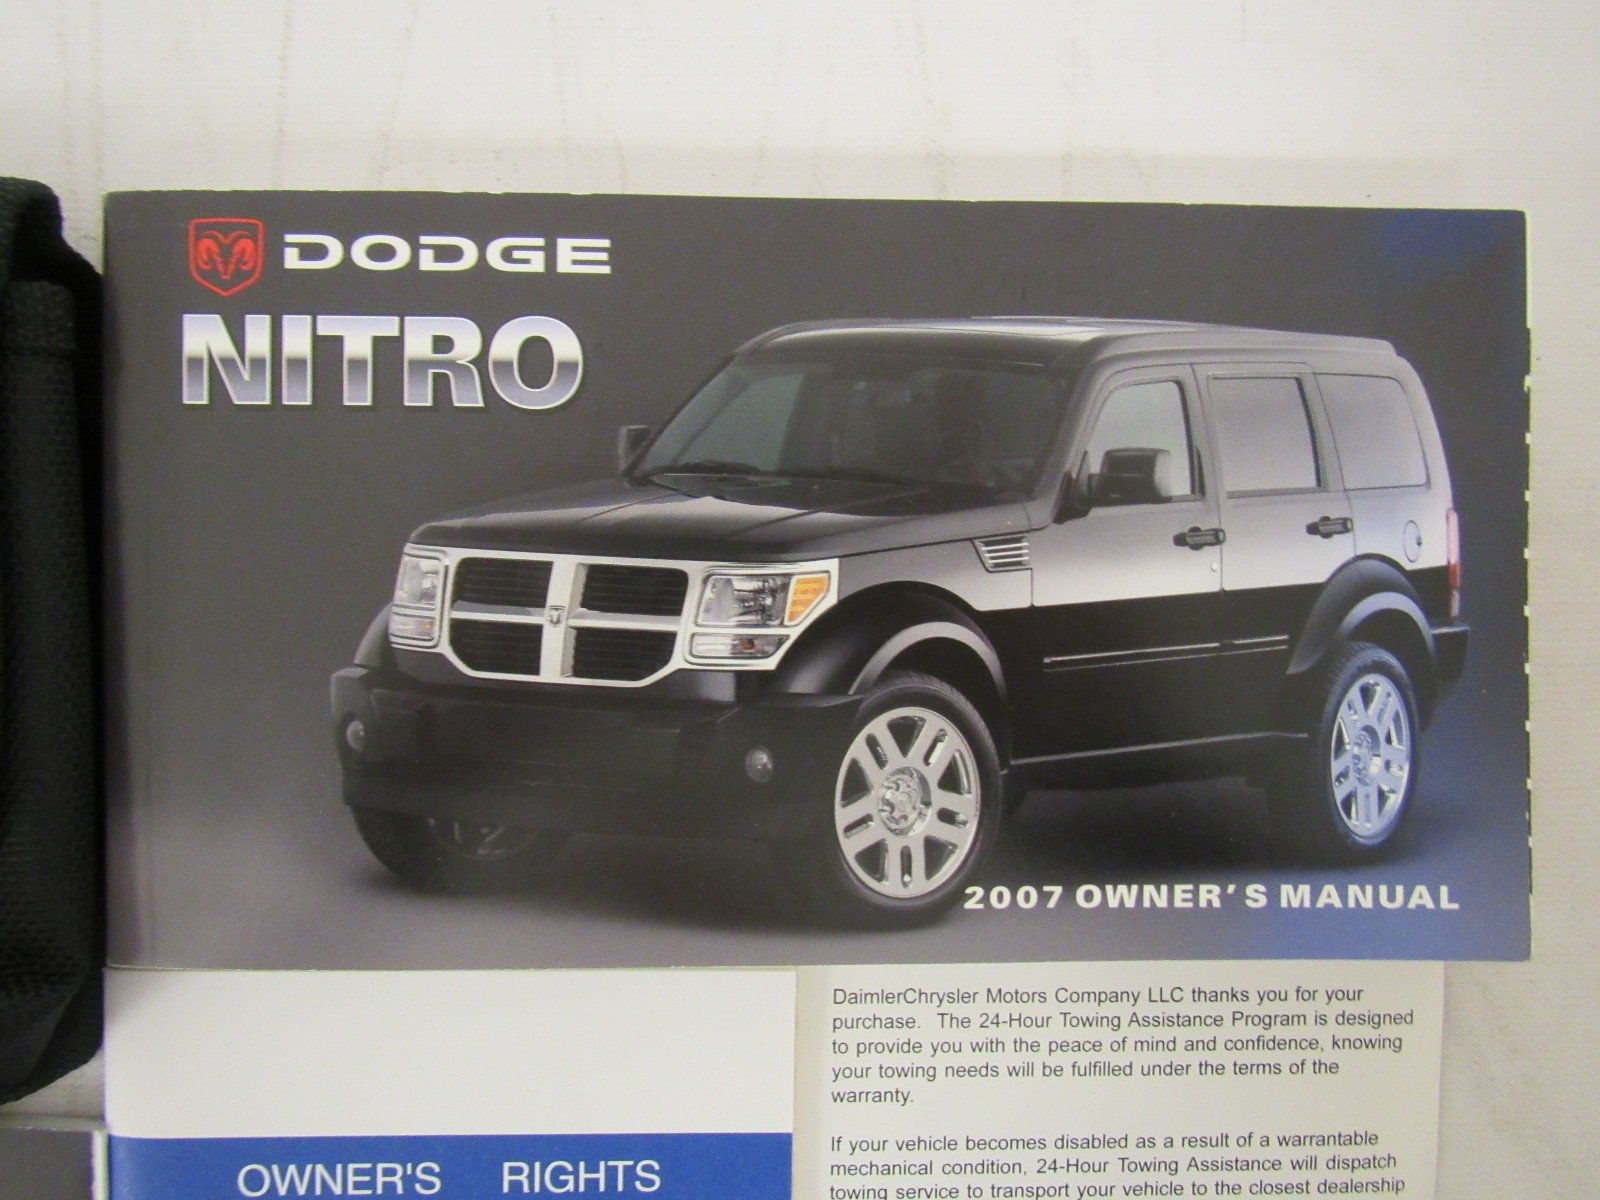 2007 dodge nitro owners manual guide book amazon com books rh amazon com 2010 dodge nitro repair manual 2007 dodge nitro repair manual free download